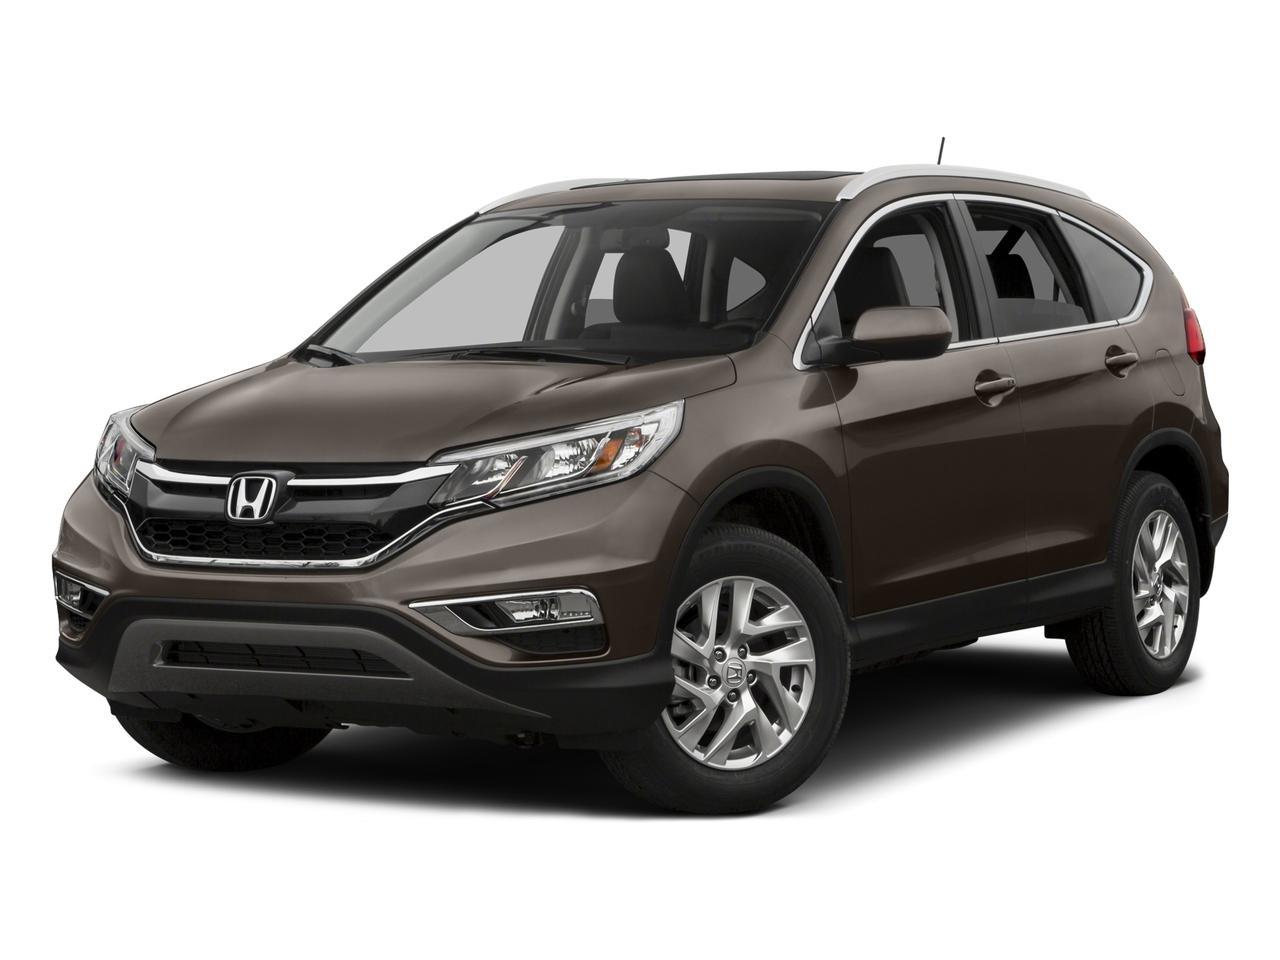 2015 Honda CR-V Vehicle Photo in Casper, WY 82609